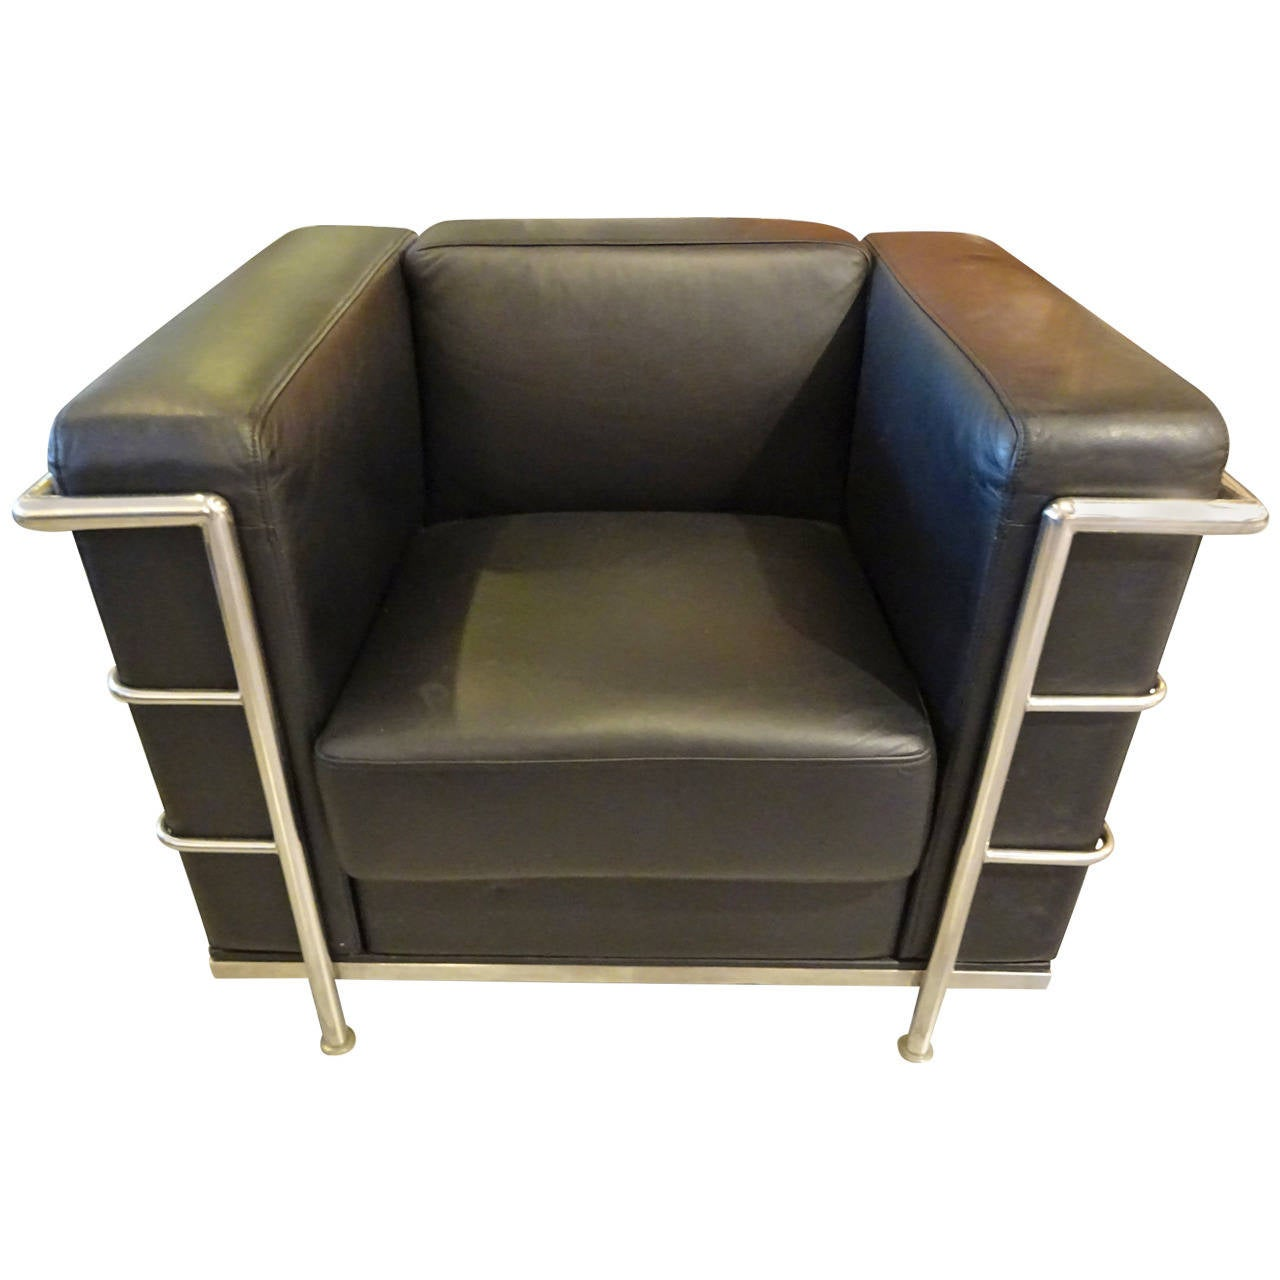 le corbusier style lounge chair at 1stdibs. Black Bedroom Furniture Sets. Home Design Ideas